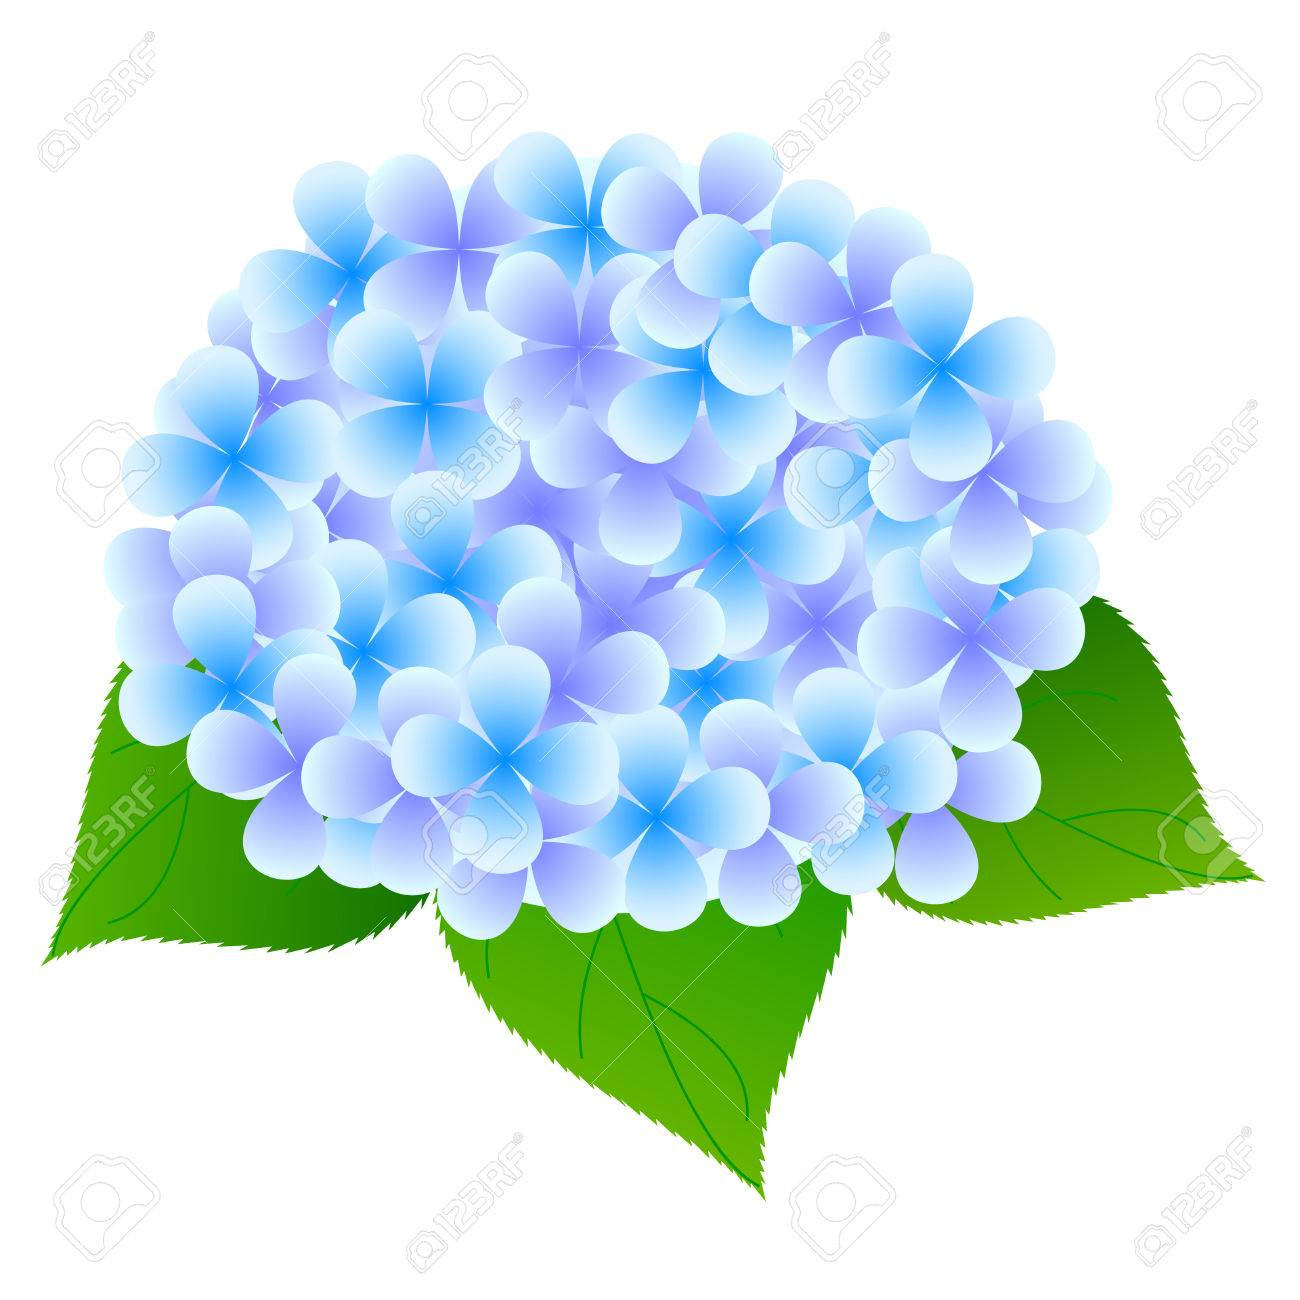 hydrangea flower leaves royalty free cliparts vectors and stock rh 123rf com hydrangea clipart simple hydrangea clipart borders